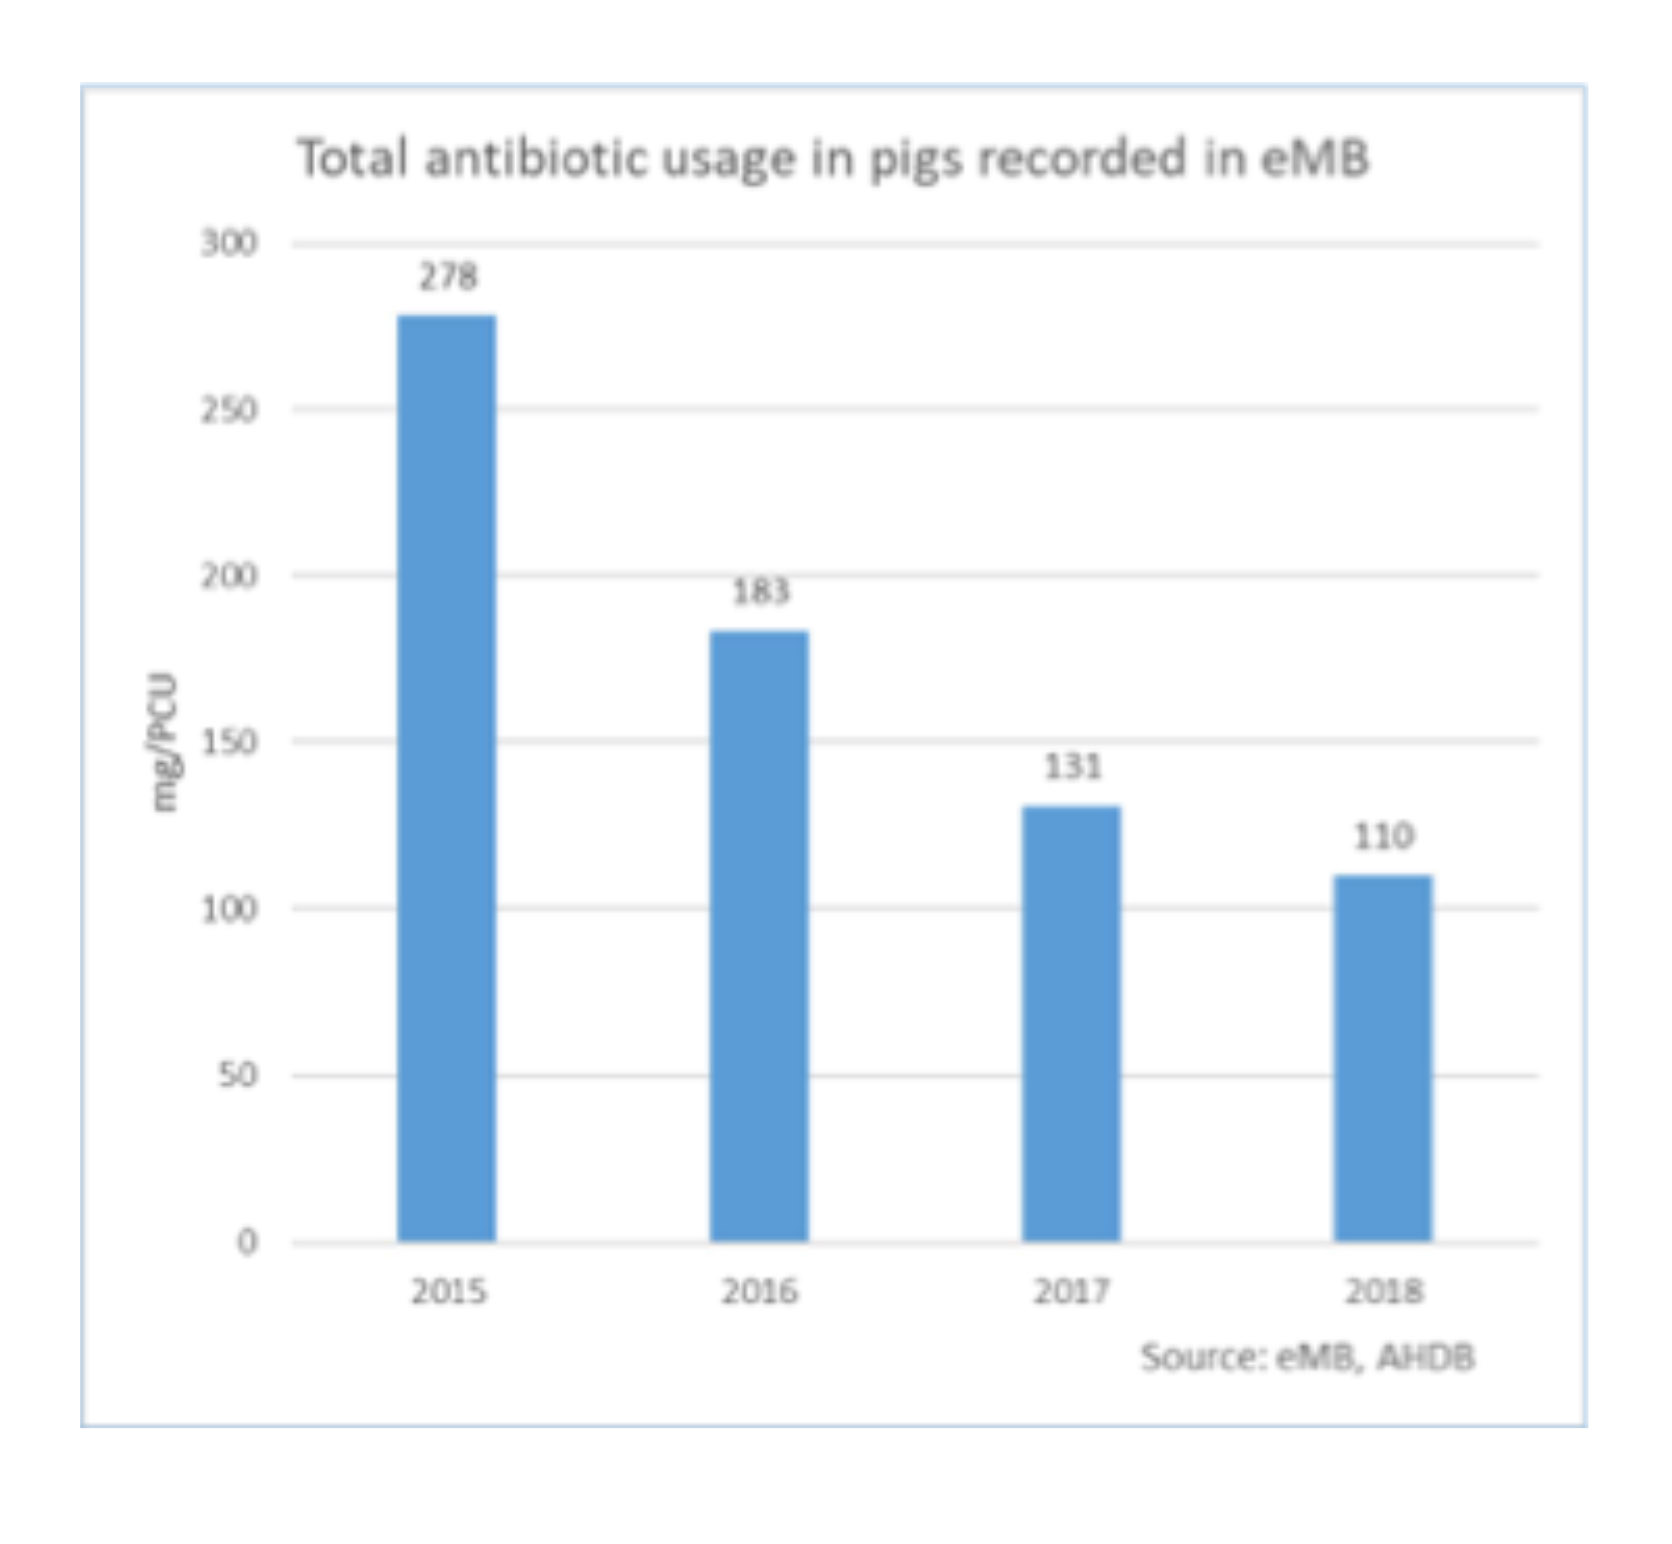 Total antibiotic usage in pigs recorded in eMB